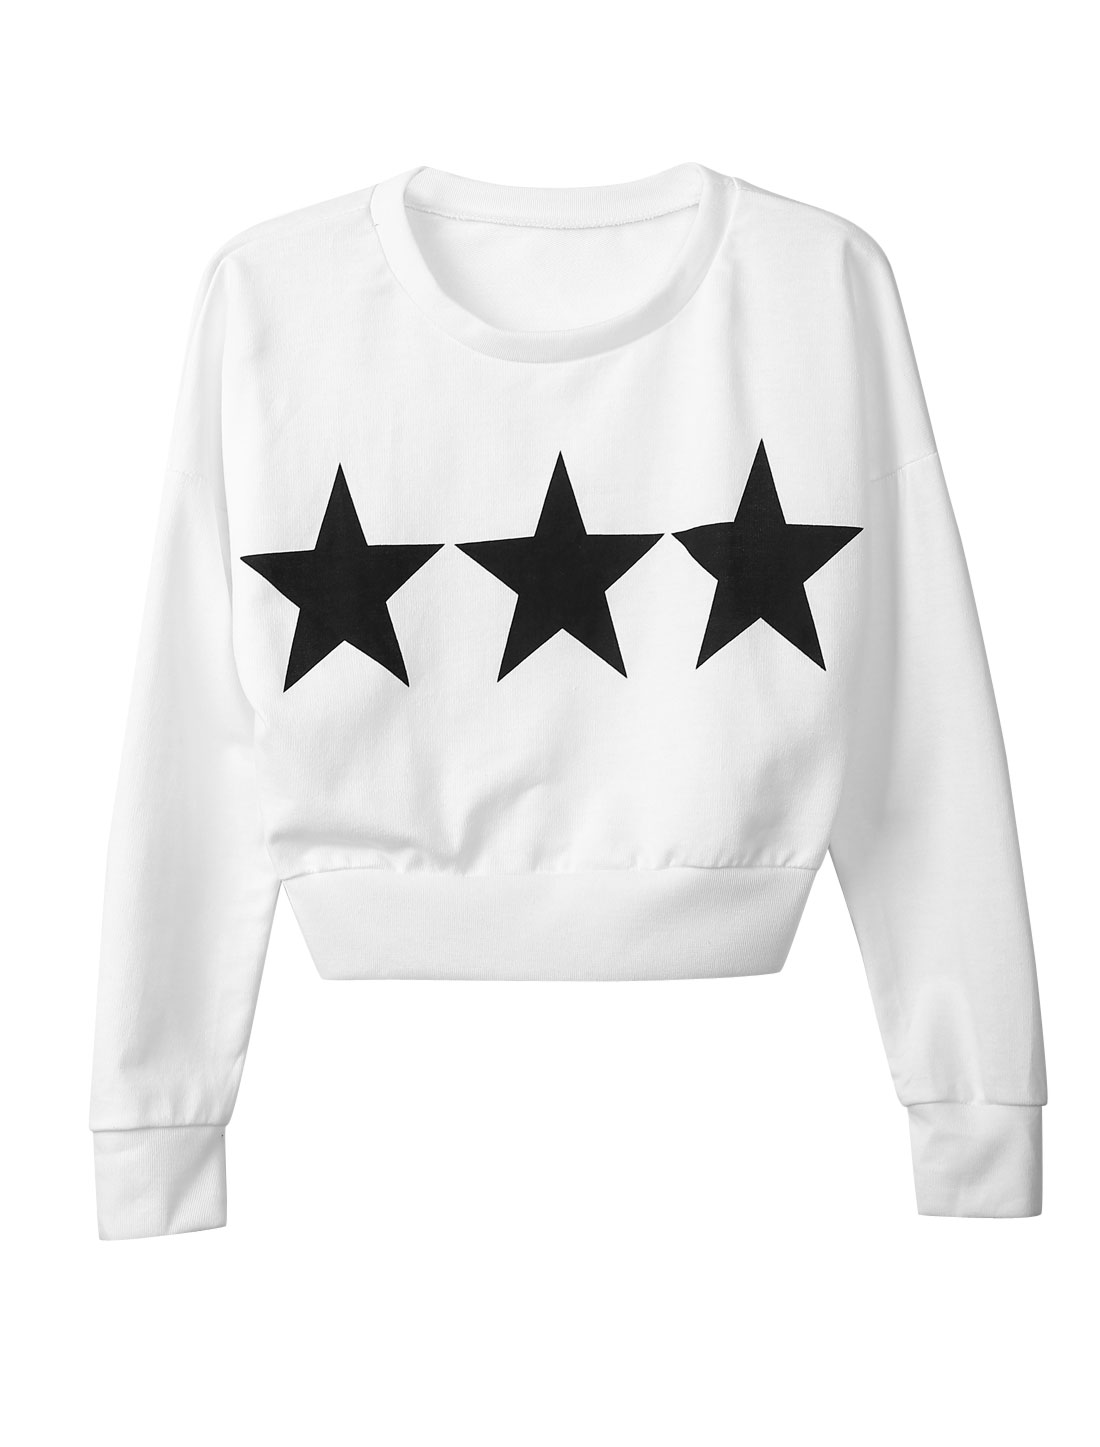 Round Neck Stars Pattern Slipover Crop Top for Women White XS